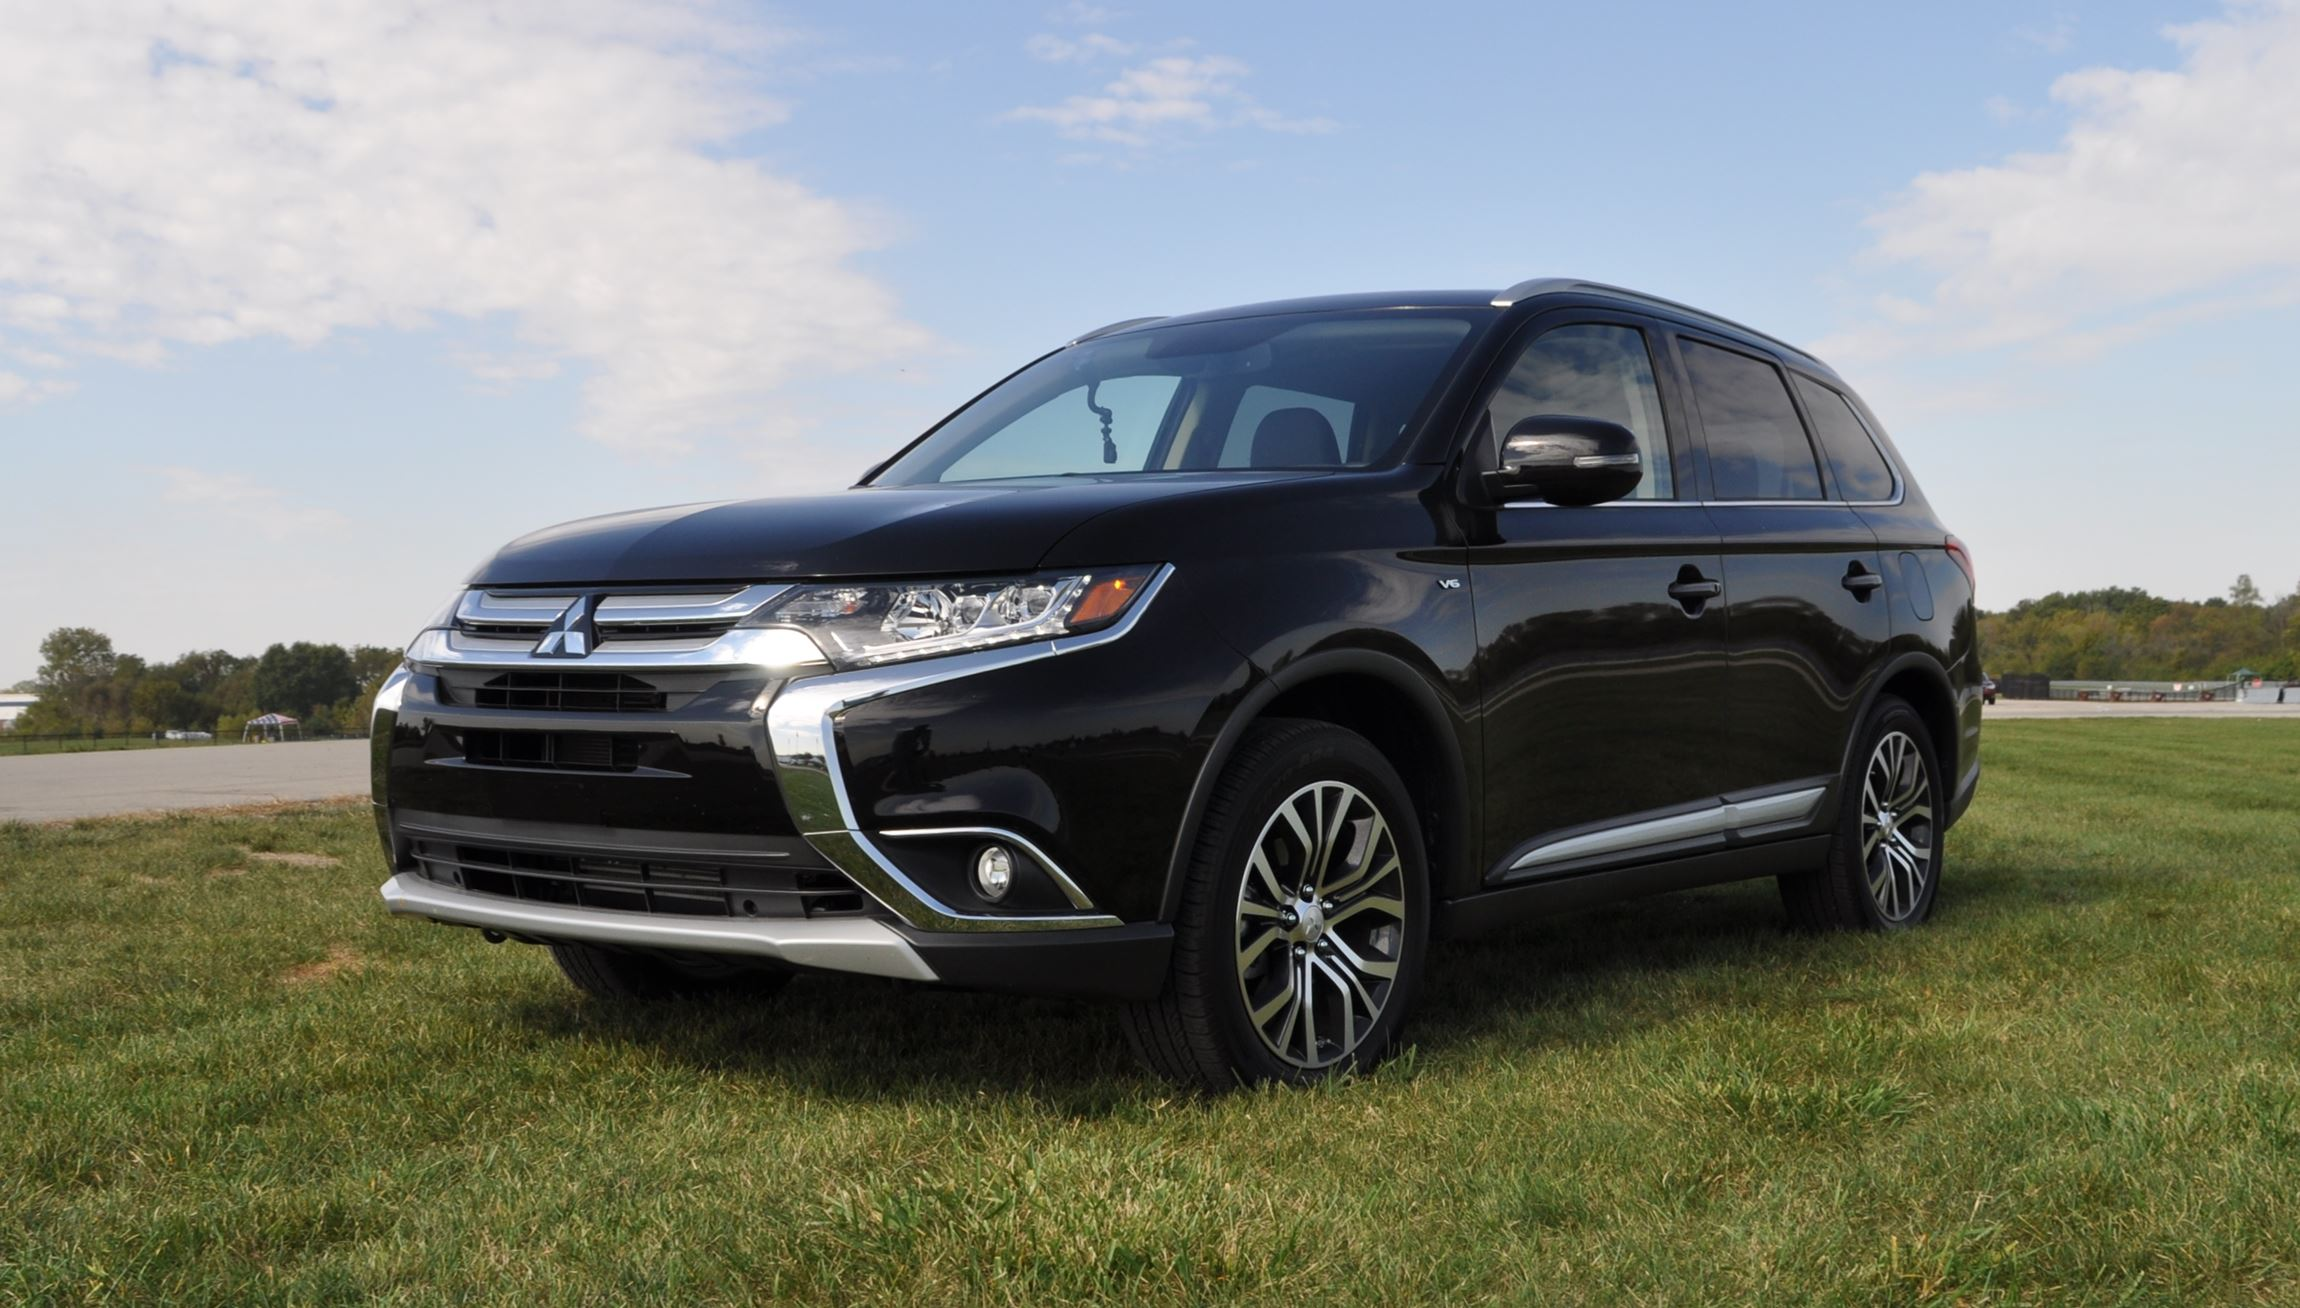 2016 mitsubishi outlander 3 0 gt s awc review 45. Black Bedroom Furniture Sets. Home Design Ideas